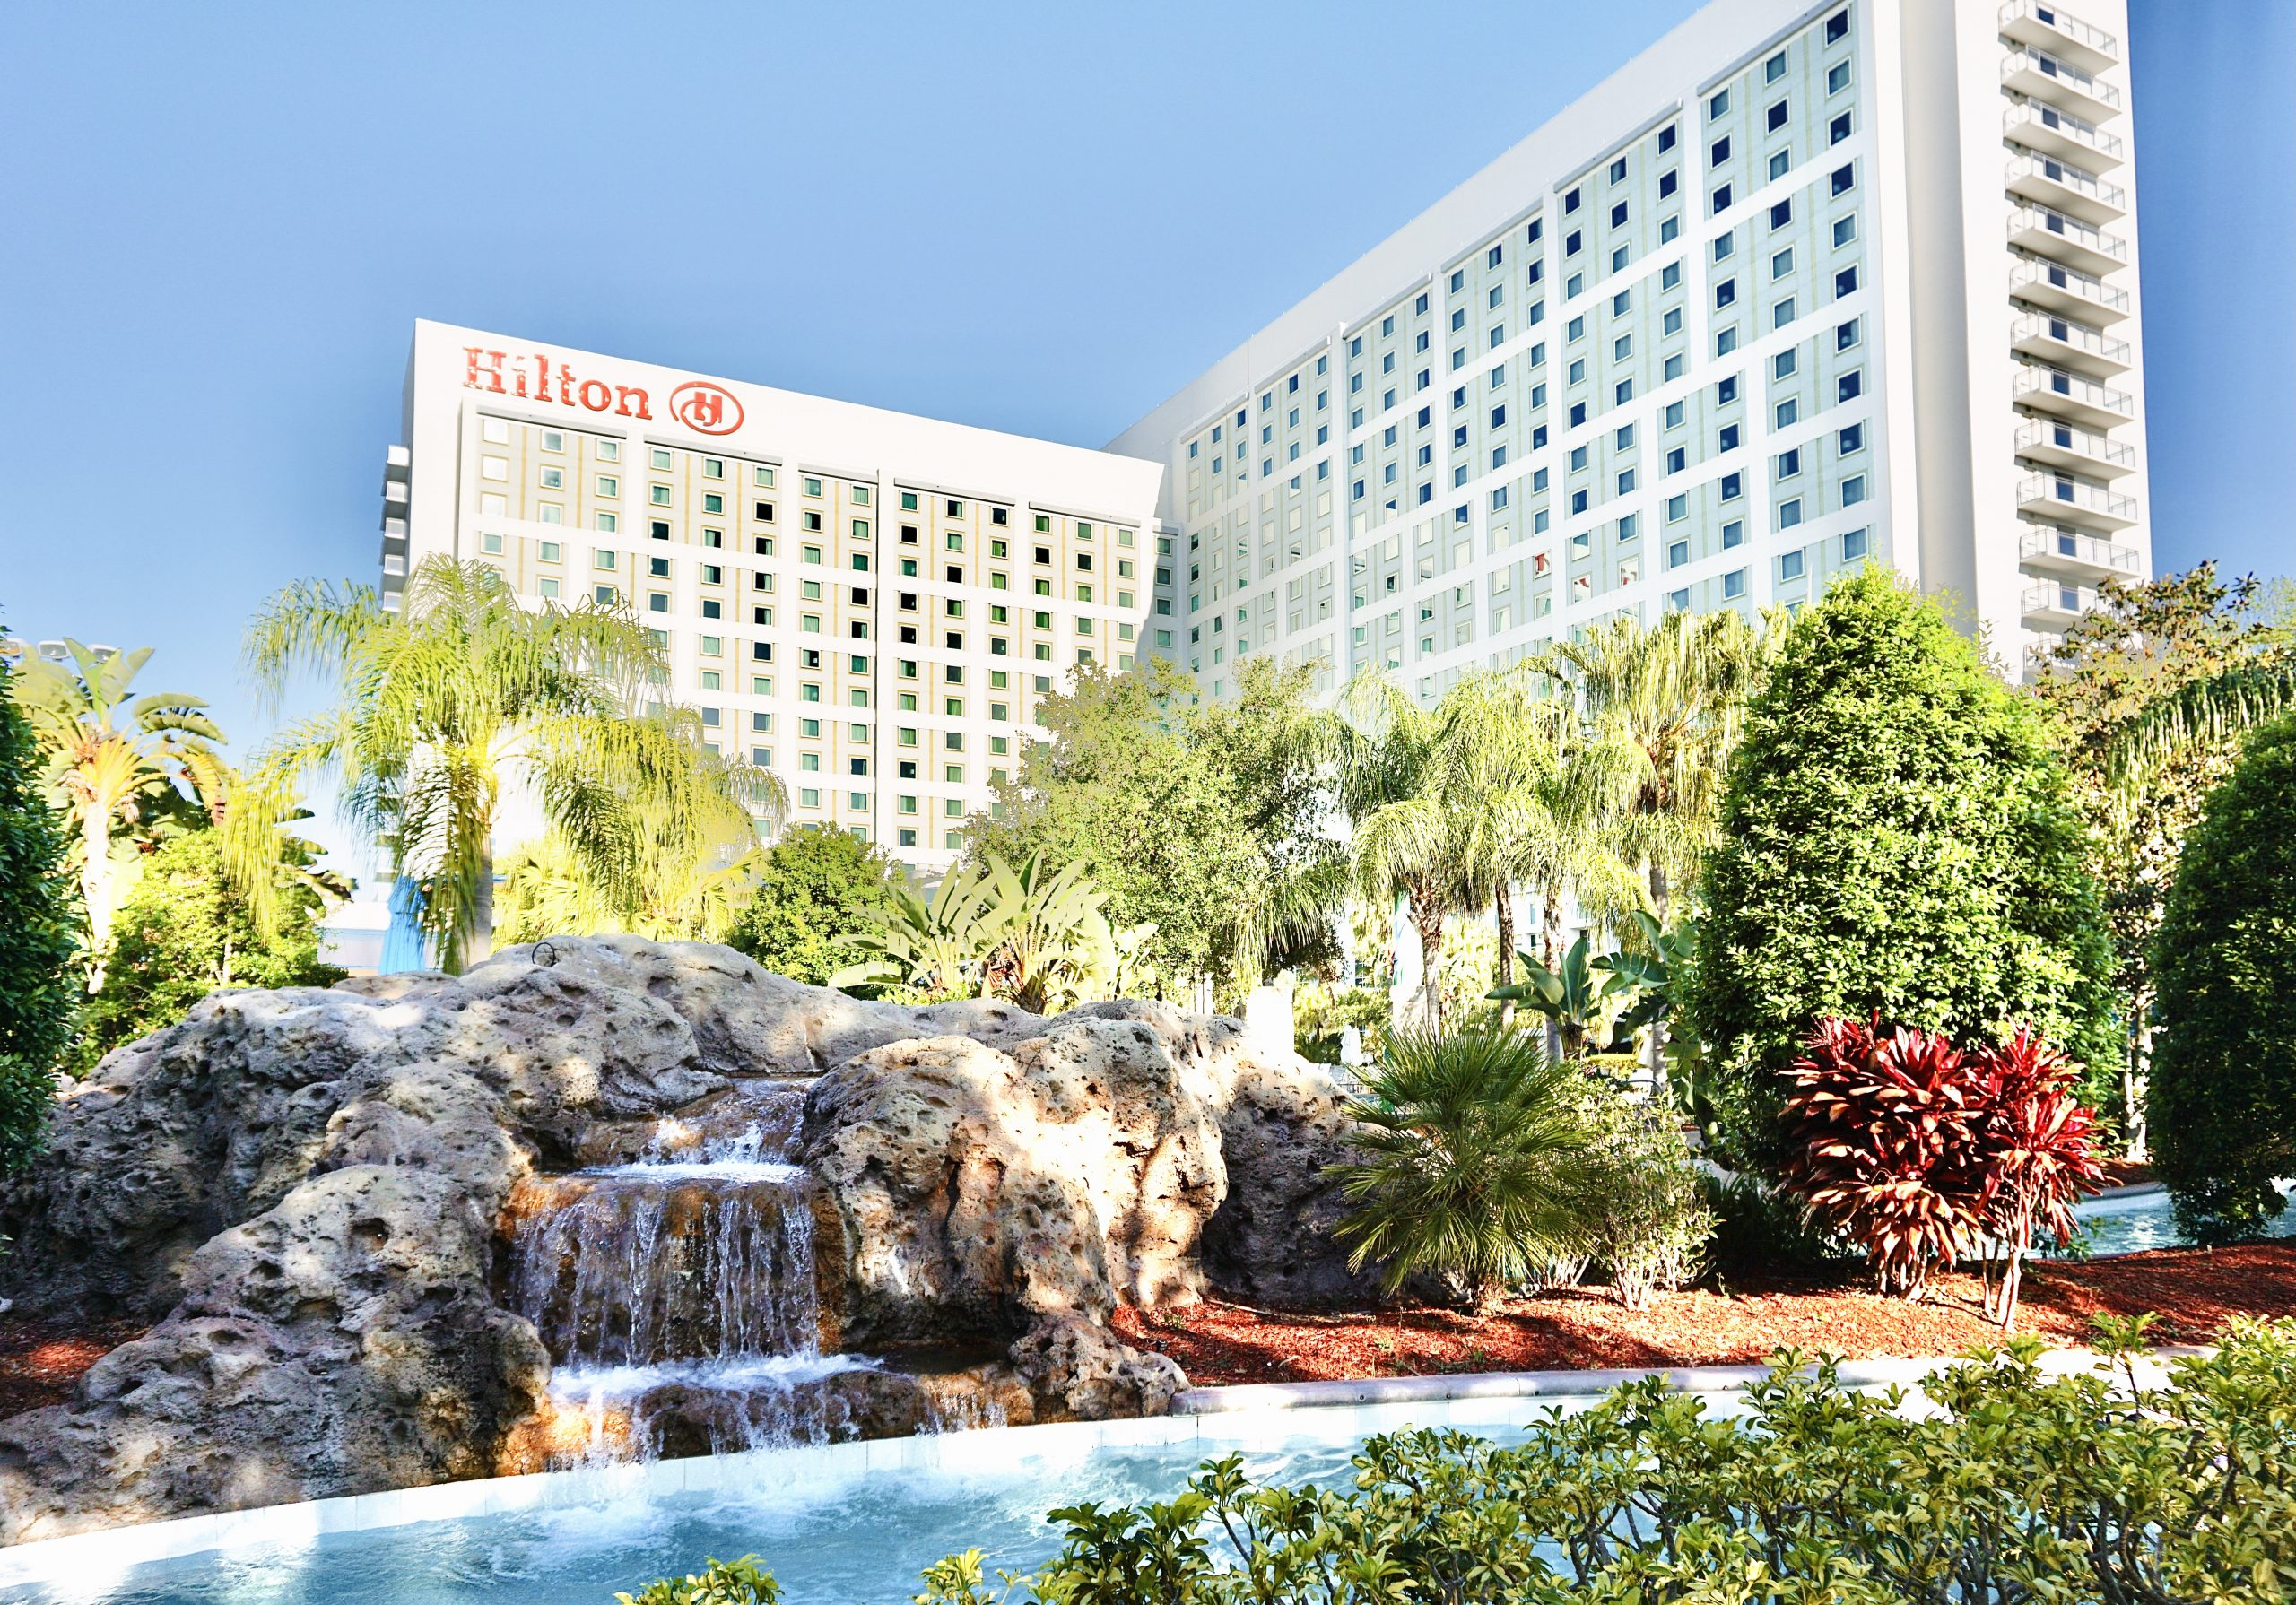 The Hilton Orlando Hotel and Convention Center- Ultimate Travel Guide & Review